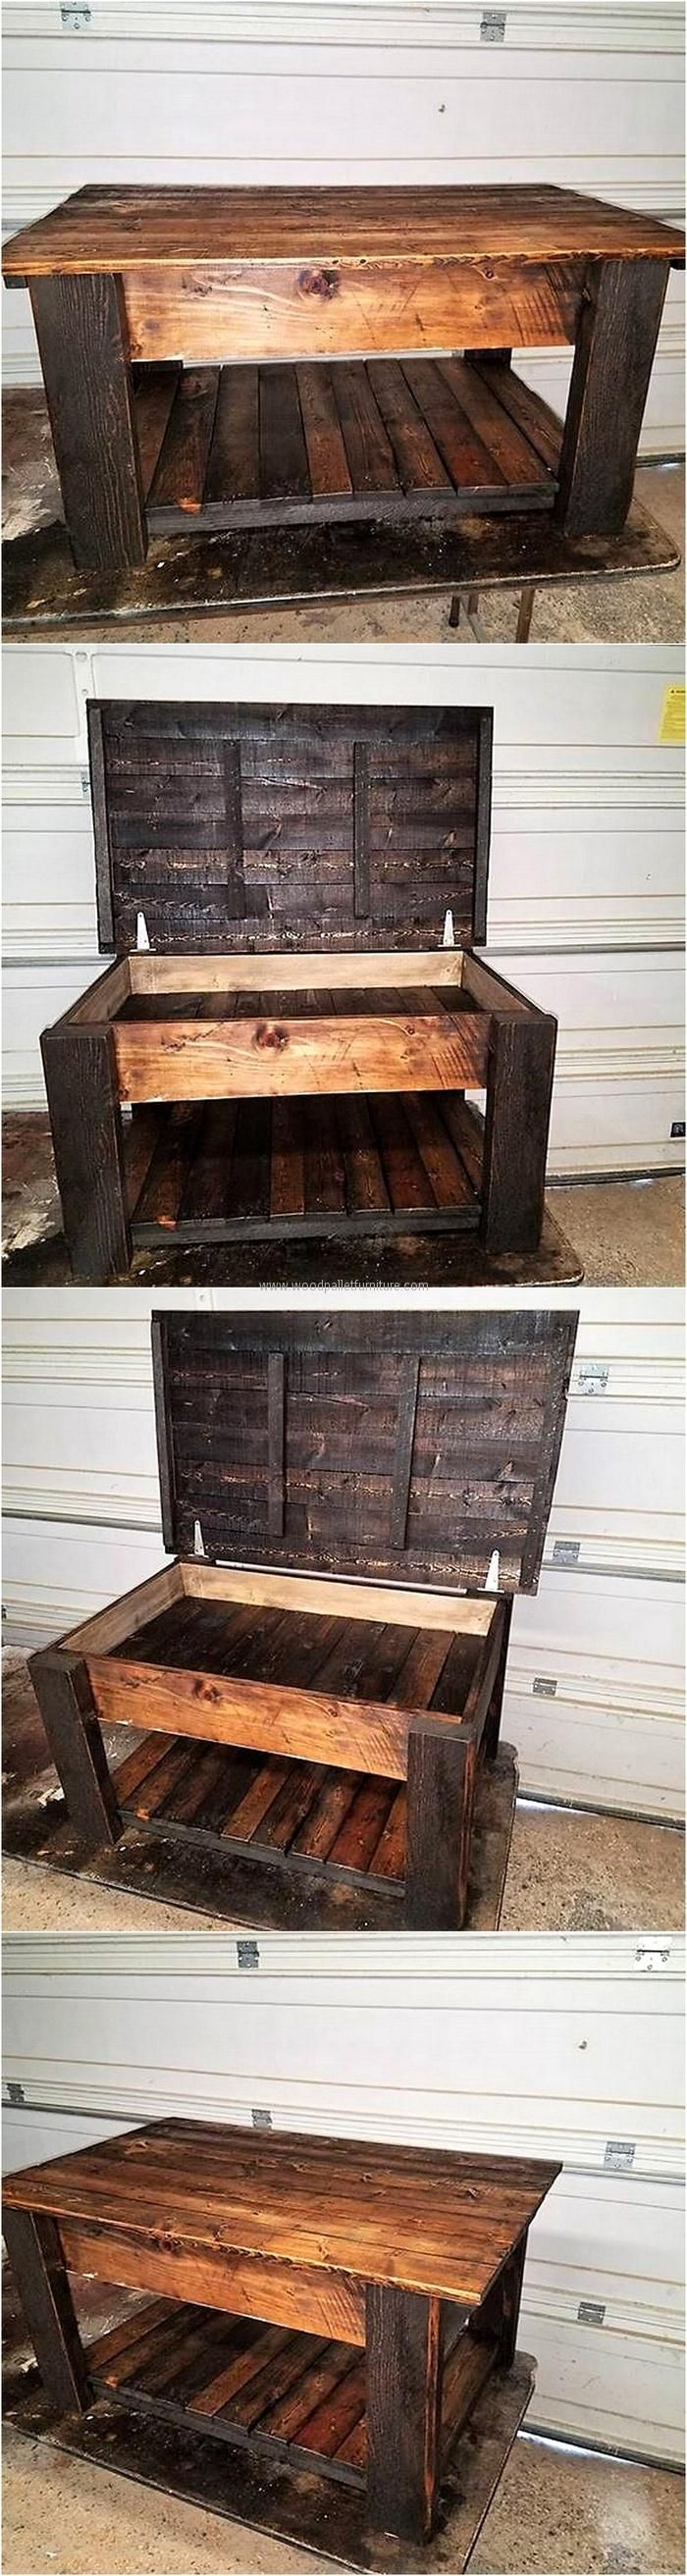 40 Easy Ideas for Pallet Recycling Those